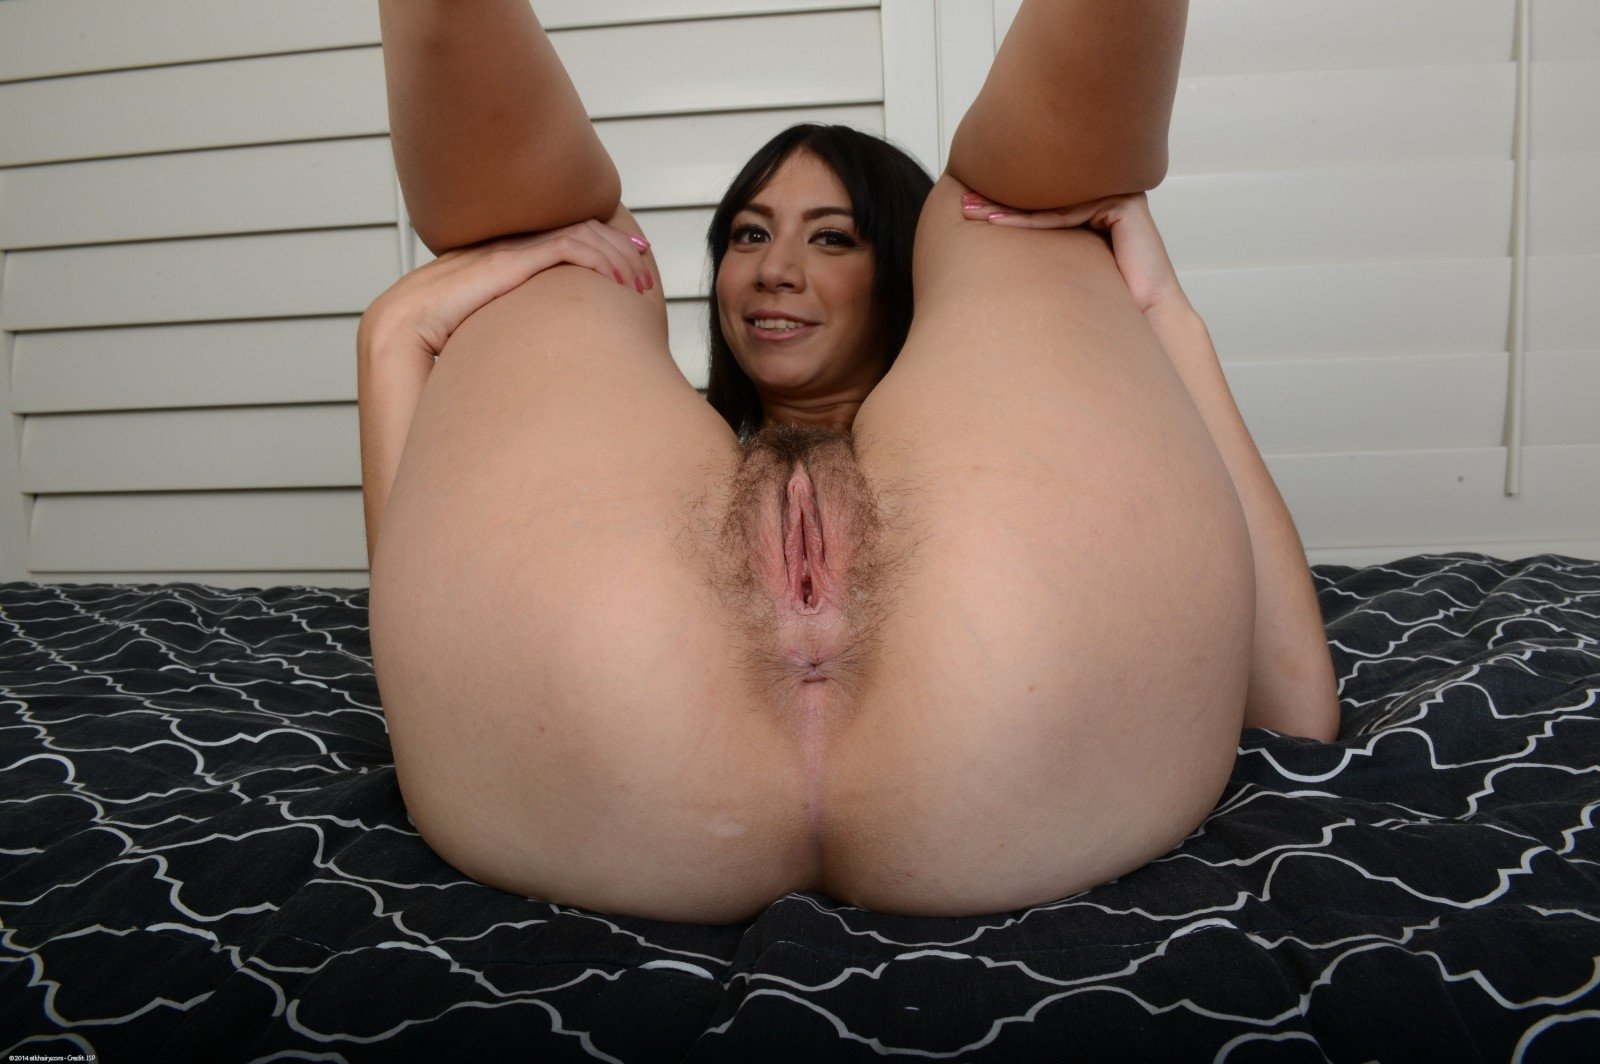 Wife finbering her pussy with husband